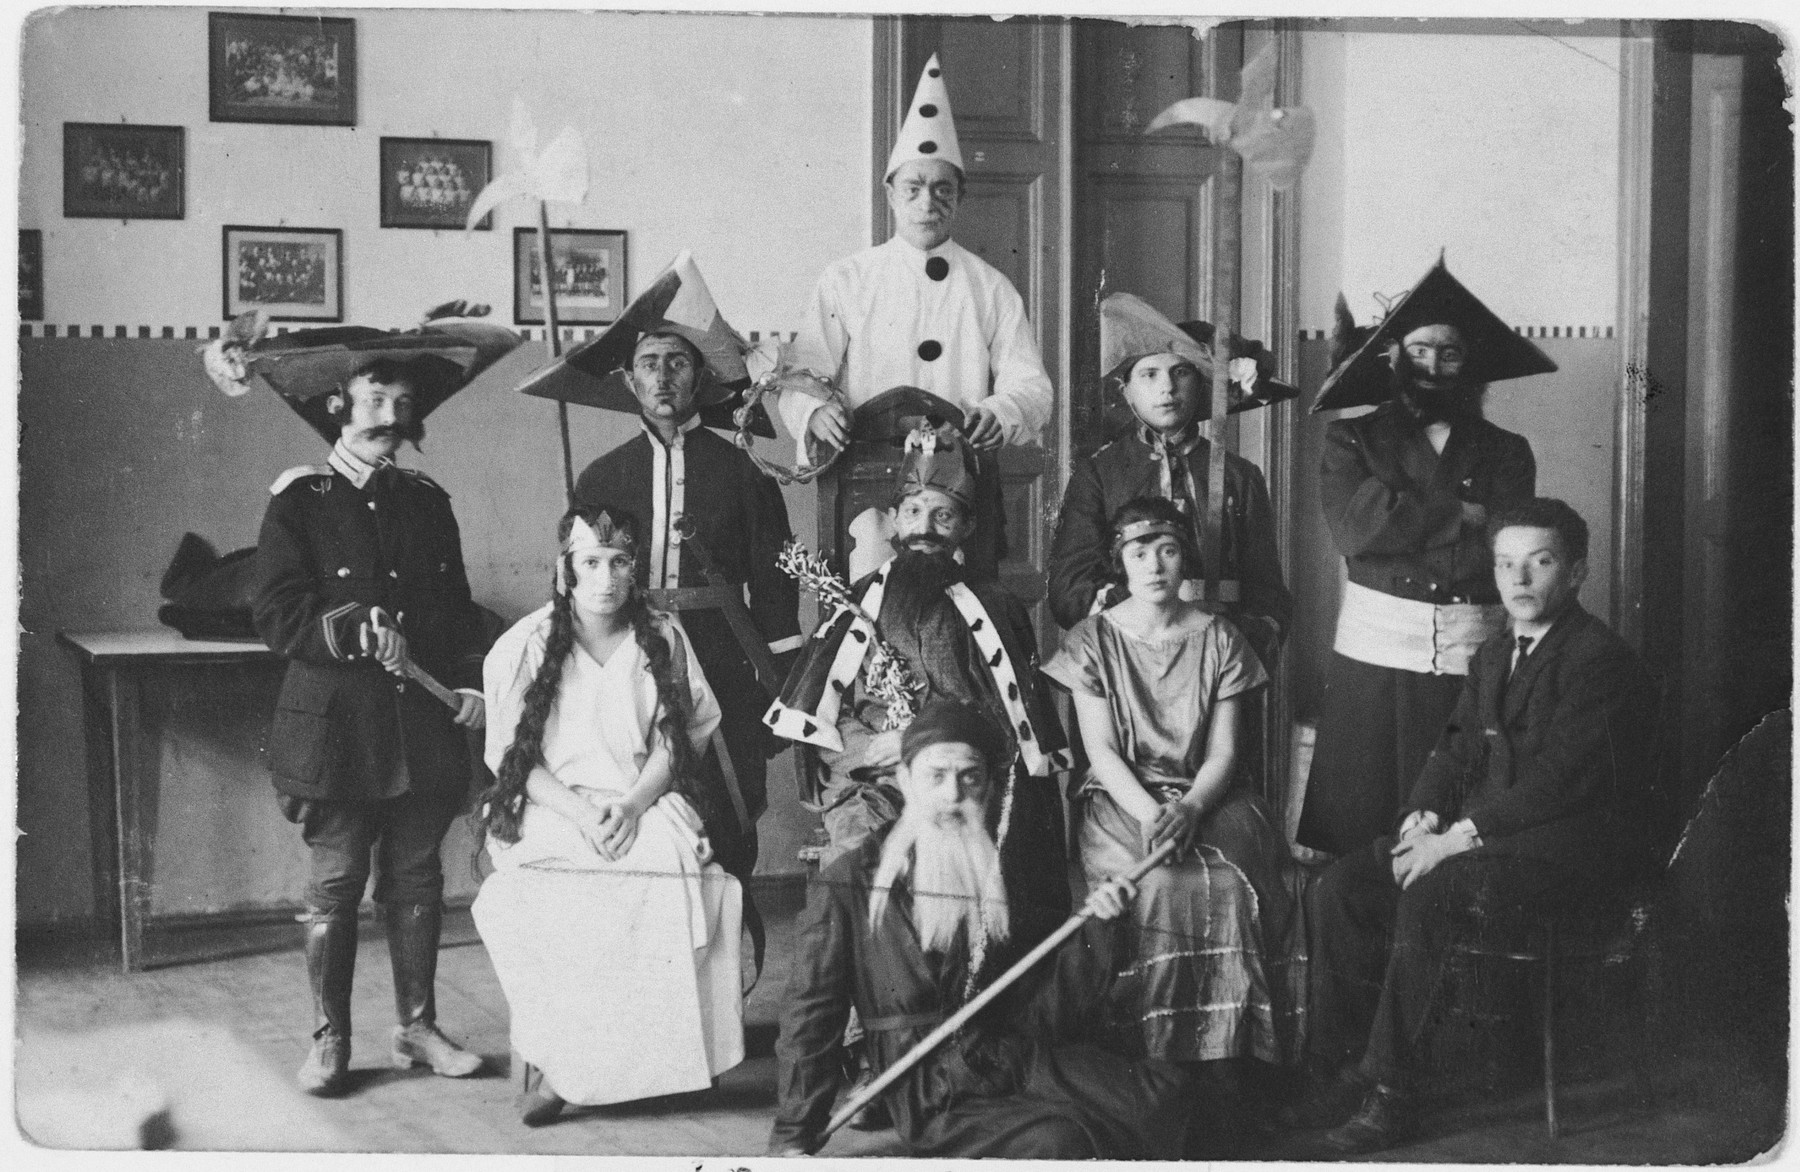 Students of the Vilner Lerer Seminar (Yiddish Teachers' Seminary) perform in a Purim play  Among those pictured are Batke Gilinski, Arthur Lermer, Grundman (from Lodz) amd Lichttsyer (Bielsk).